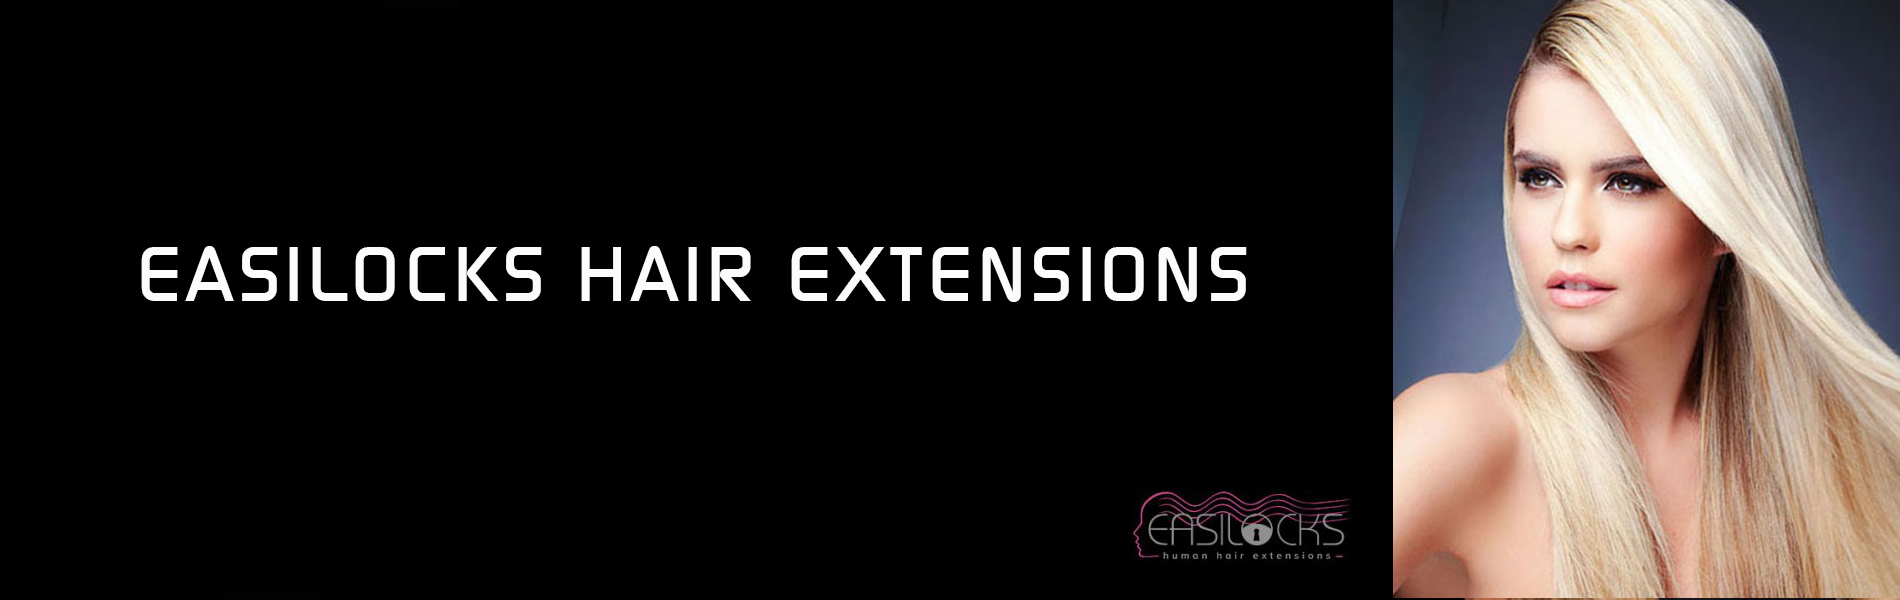 Easilocks Hair Extensions Uxbridge Hair Salon